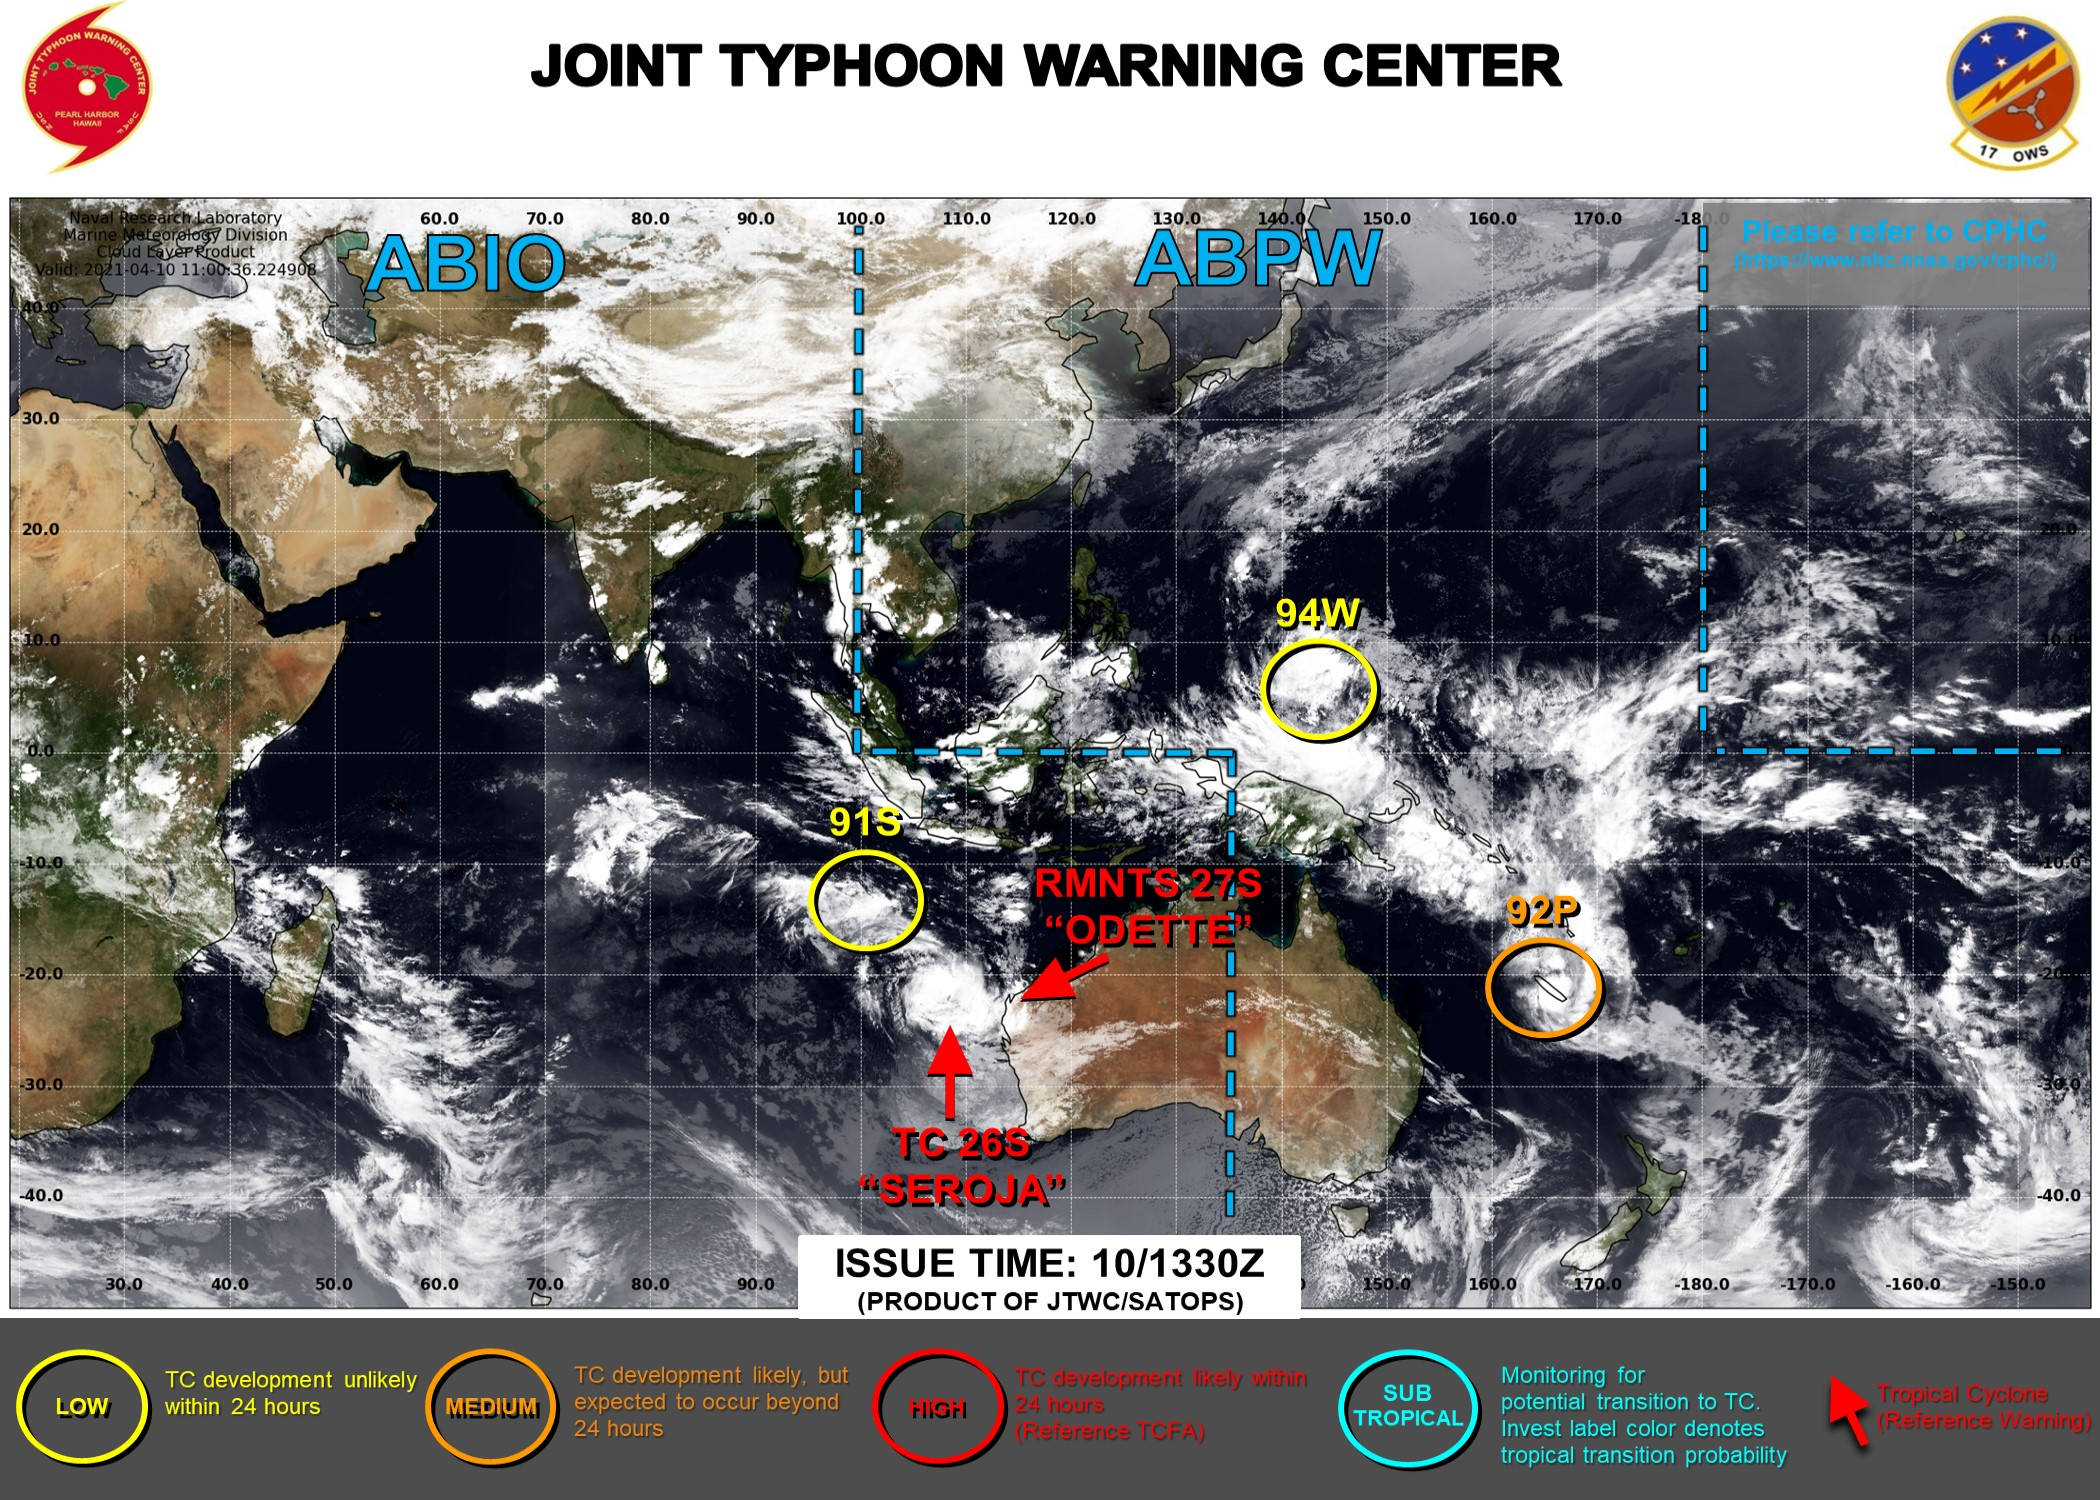 THE JTWC IS ISSUING 6HOURLY WARNINGS ON TC 26S(SEROJA). FINAL WARNING WAS ISSUED AT 10/09UTC ON TC 27S(ODETTE). 3HOURLY SATELLITE BULLETINS ARE ISSUED FOR 26S,27S,92P,91S. INVEST 94W IS NOW ON THE MAP WITH LOW CHANCES OF REACHING 25KNOTS WITHIN 24HOURS.